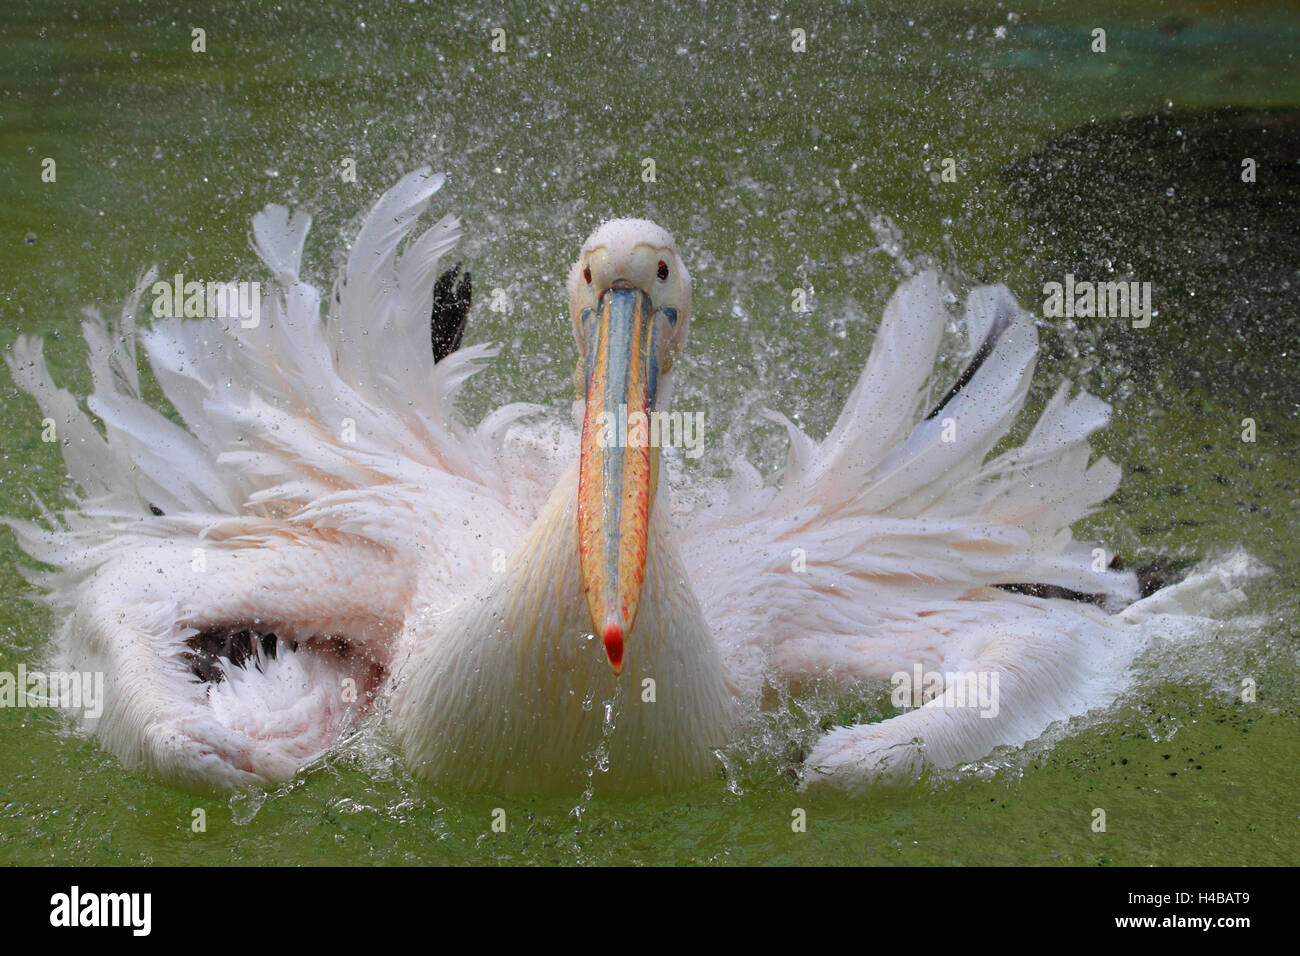 Great white pelican, Pelecanus onocrotalus - Stock Image